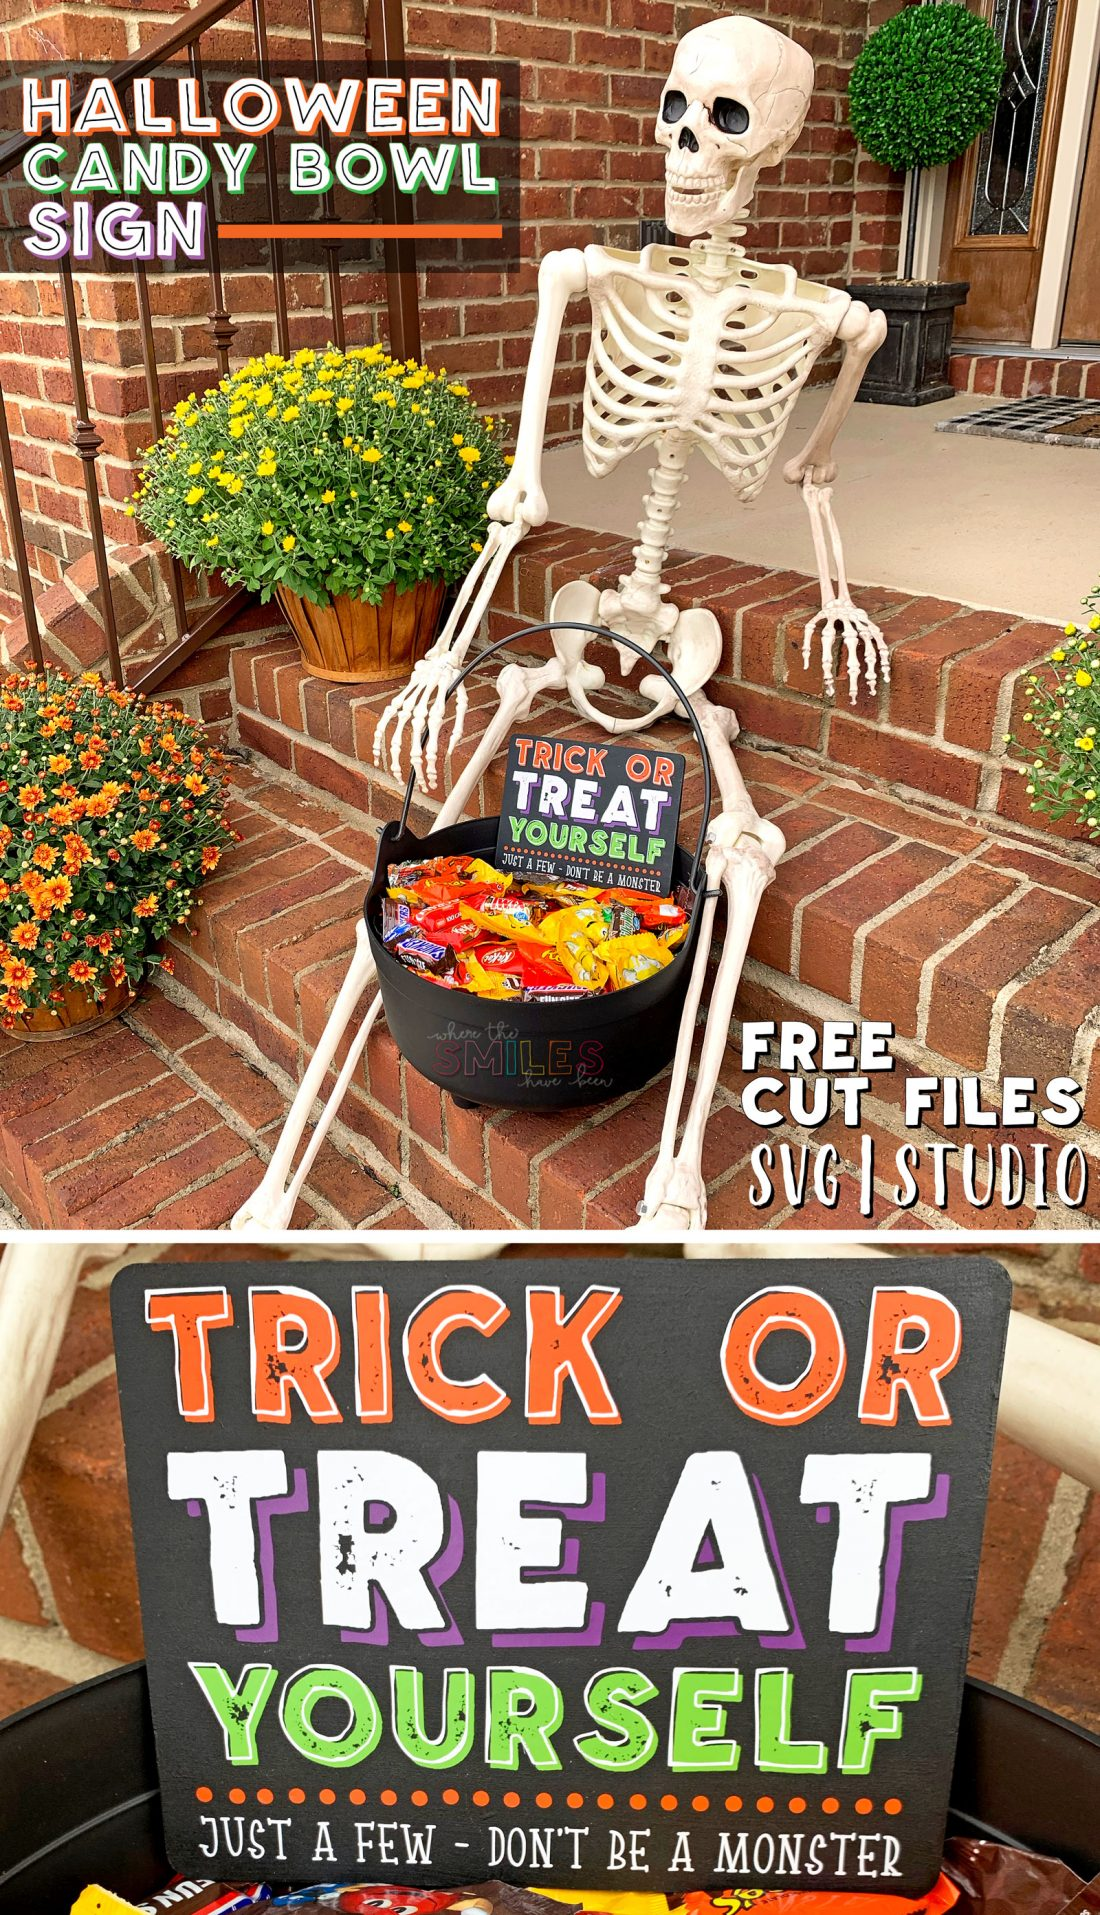 DIY 'Trick or Treat Yourself' Halloween Candy Bowl Sign + FREE Cut File!